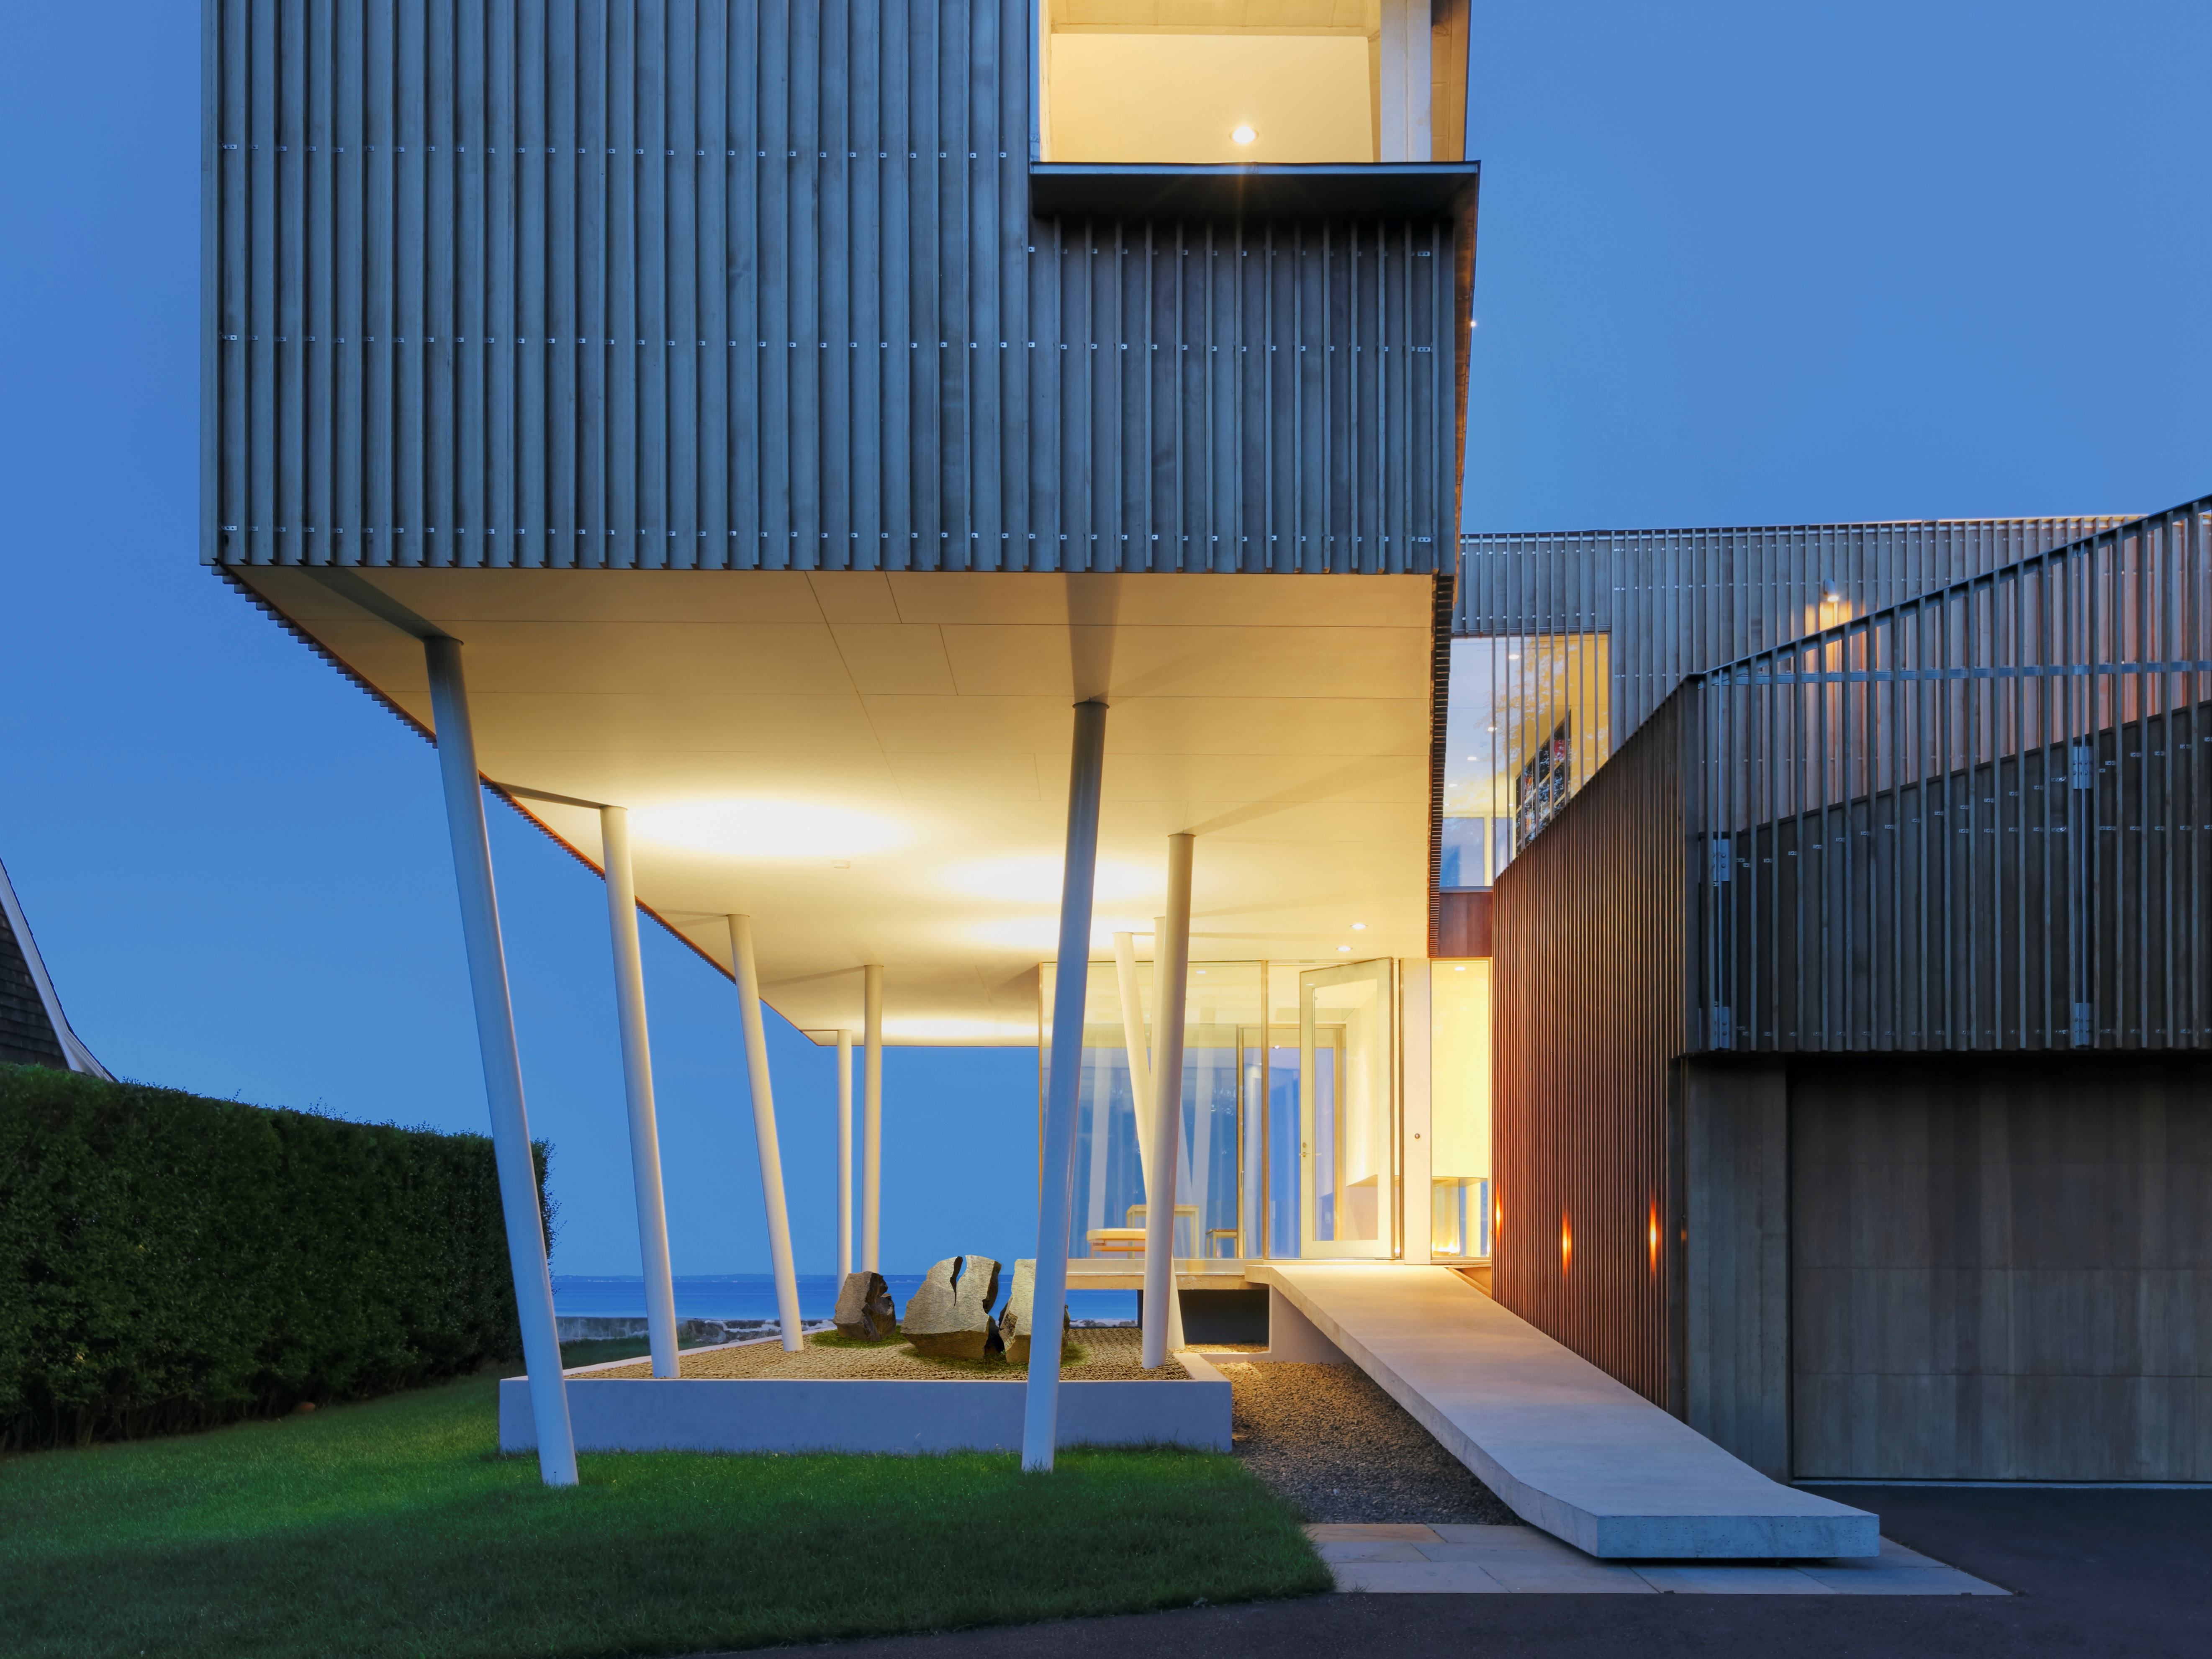 Aia 2010 housing awards announced residential architect for Residential architect design awards